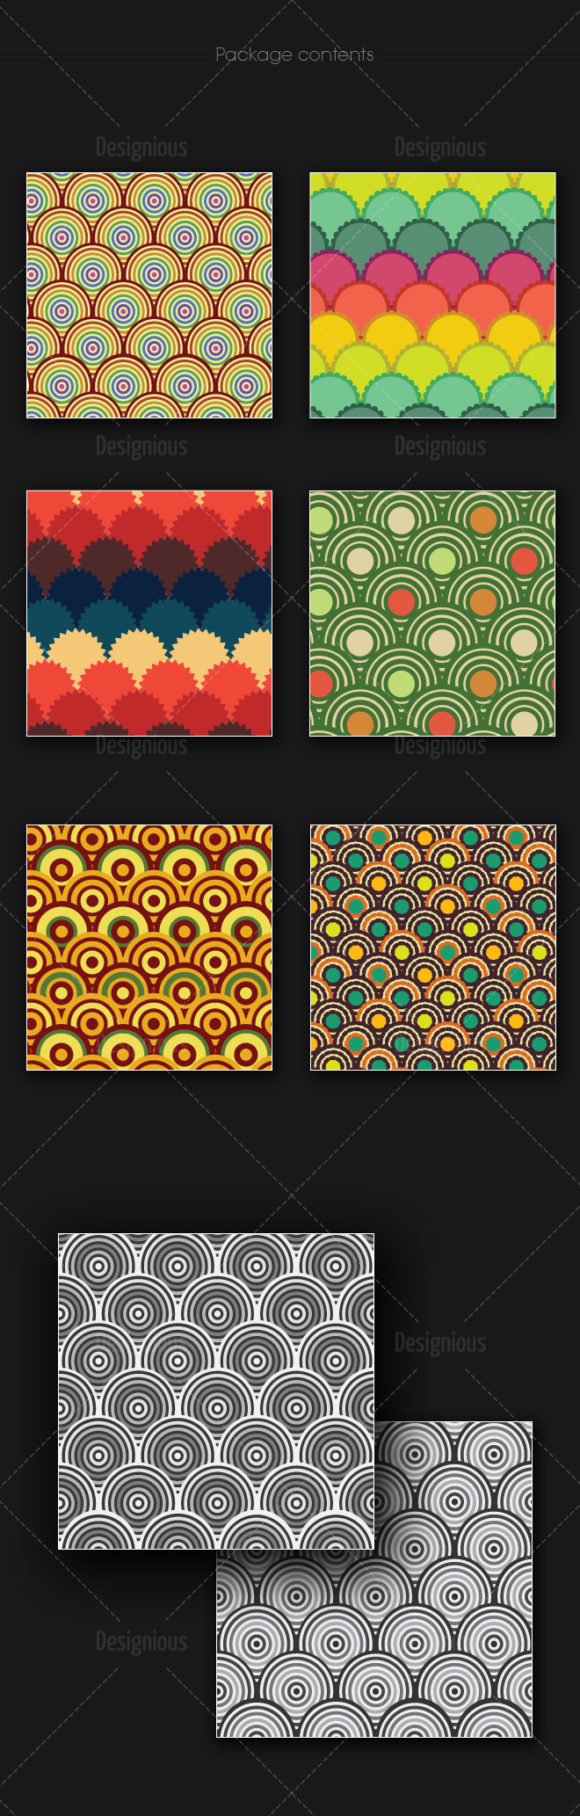 Seamless Patterns Vector Pack 163 6